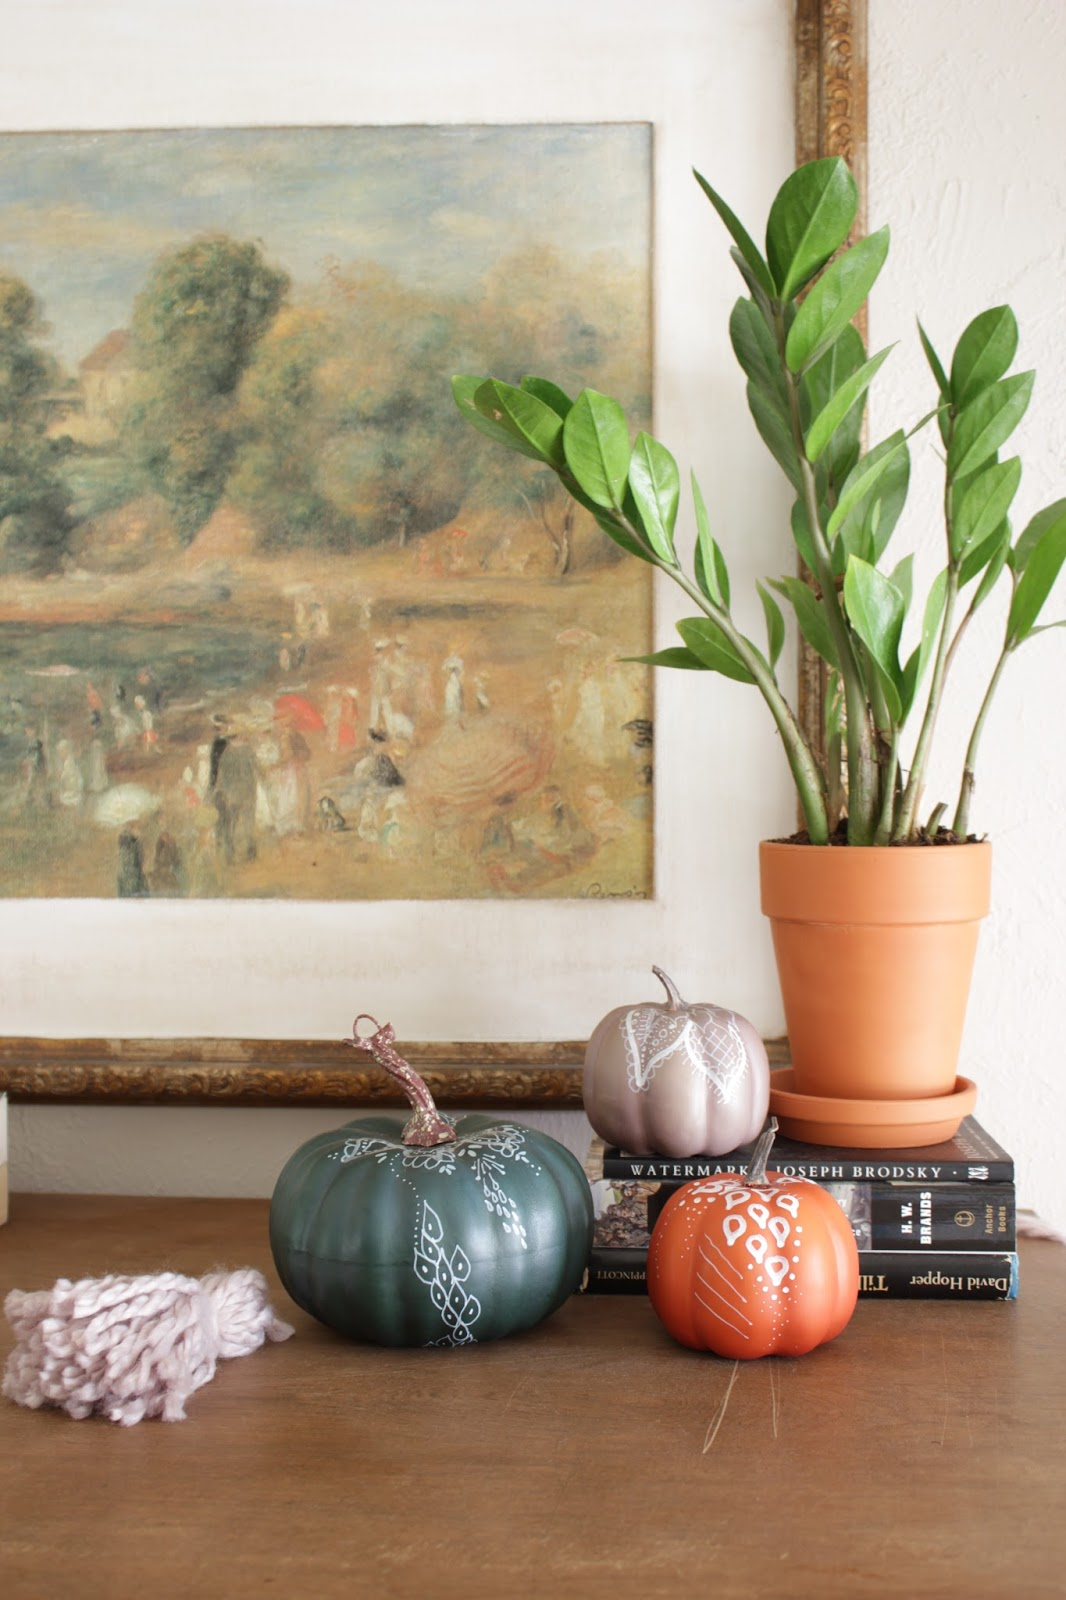 Henna Inspired Pumpkins. These are a great way to update old fall decor or modify something new!